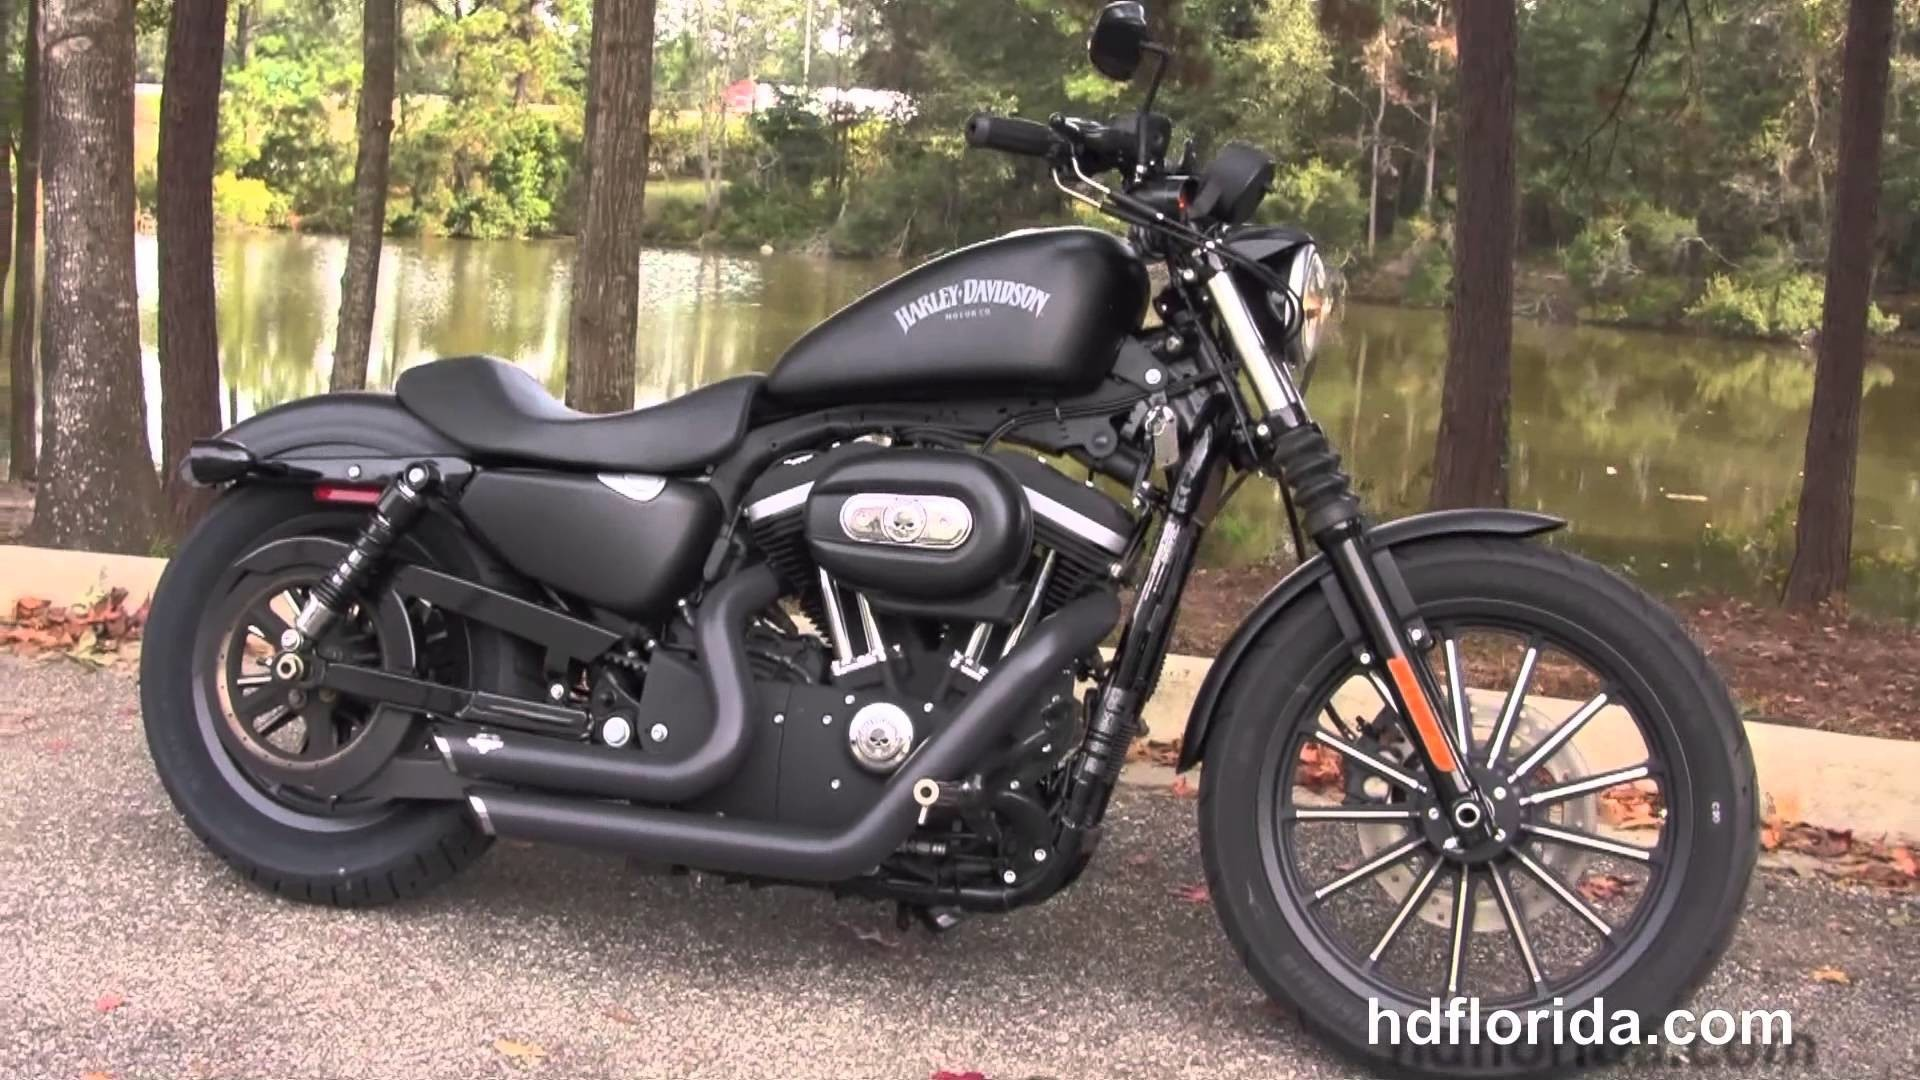 1920x1080  Images For > Harley Davidson Iron 883 Blacked Out